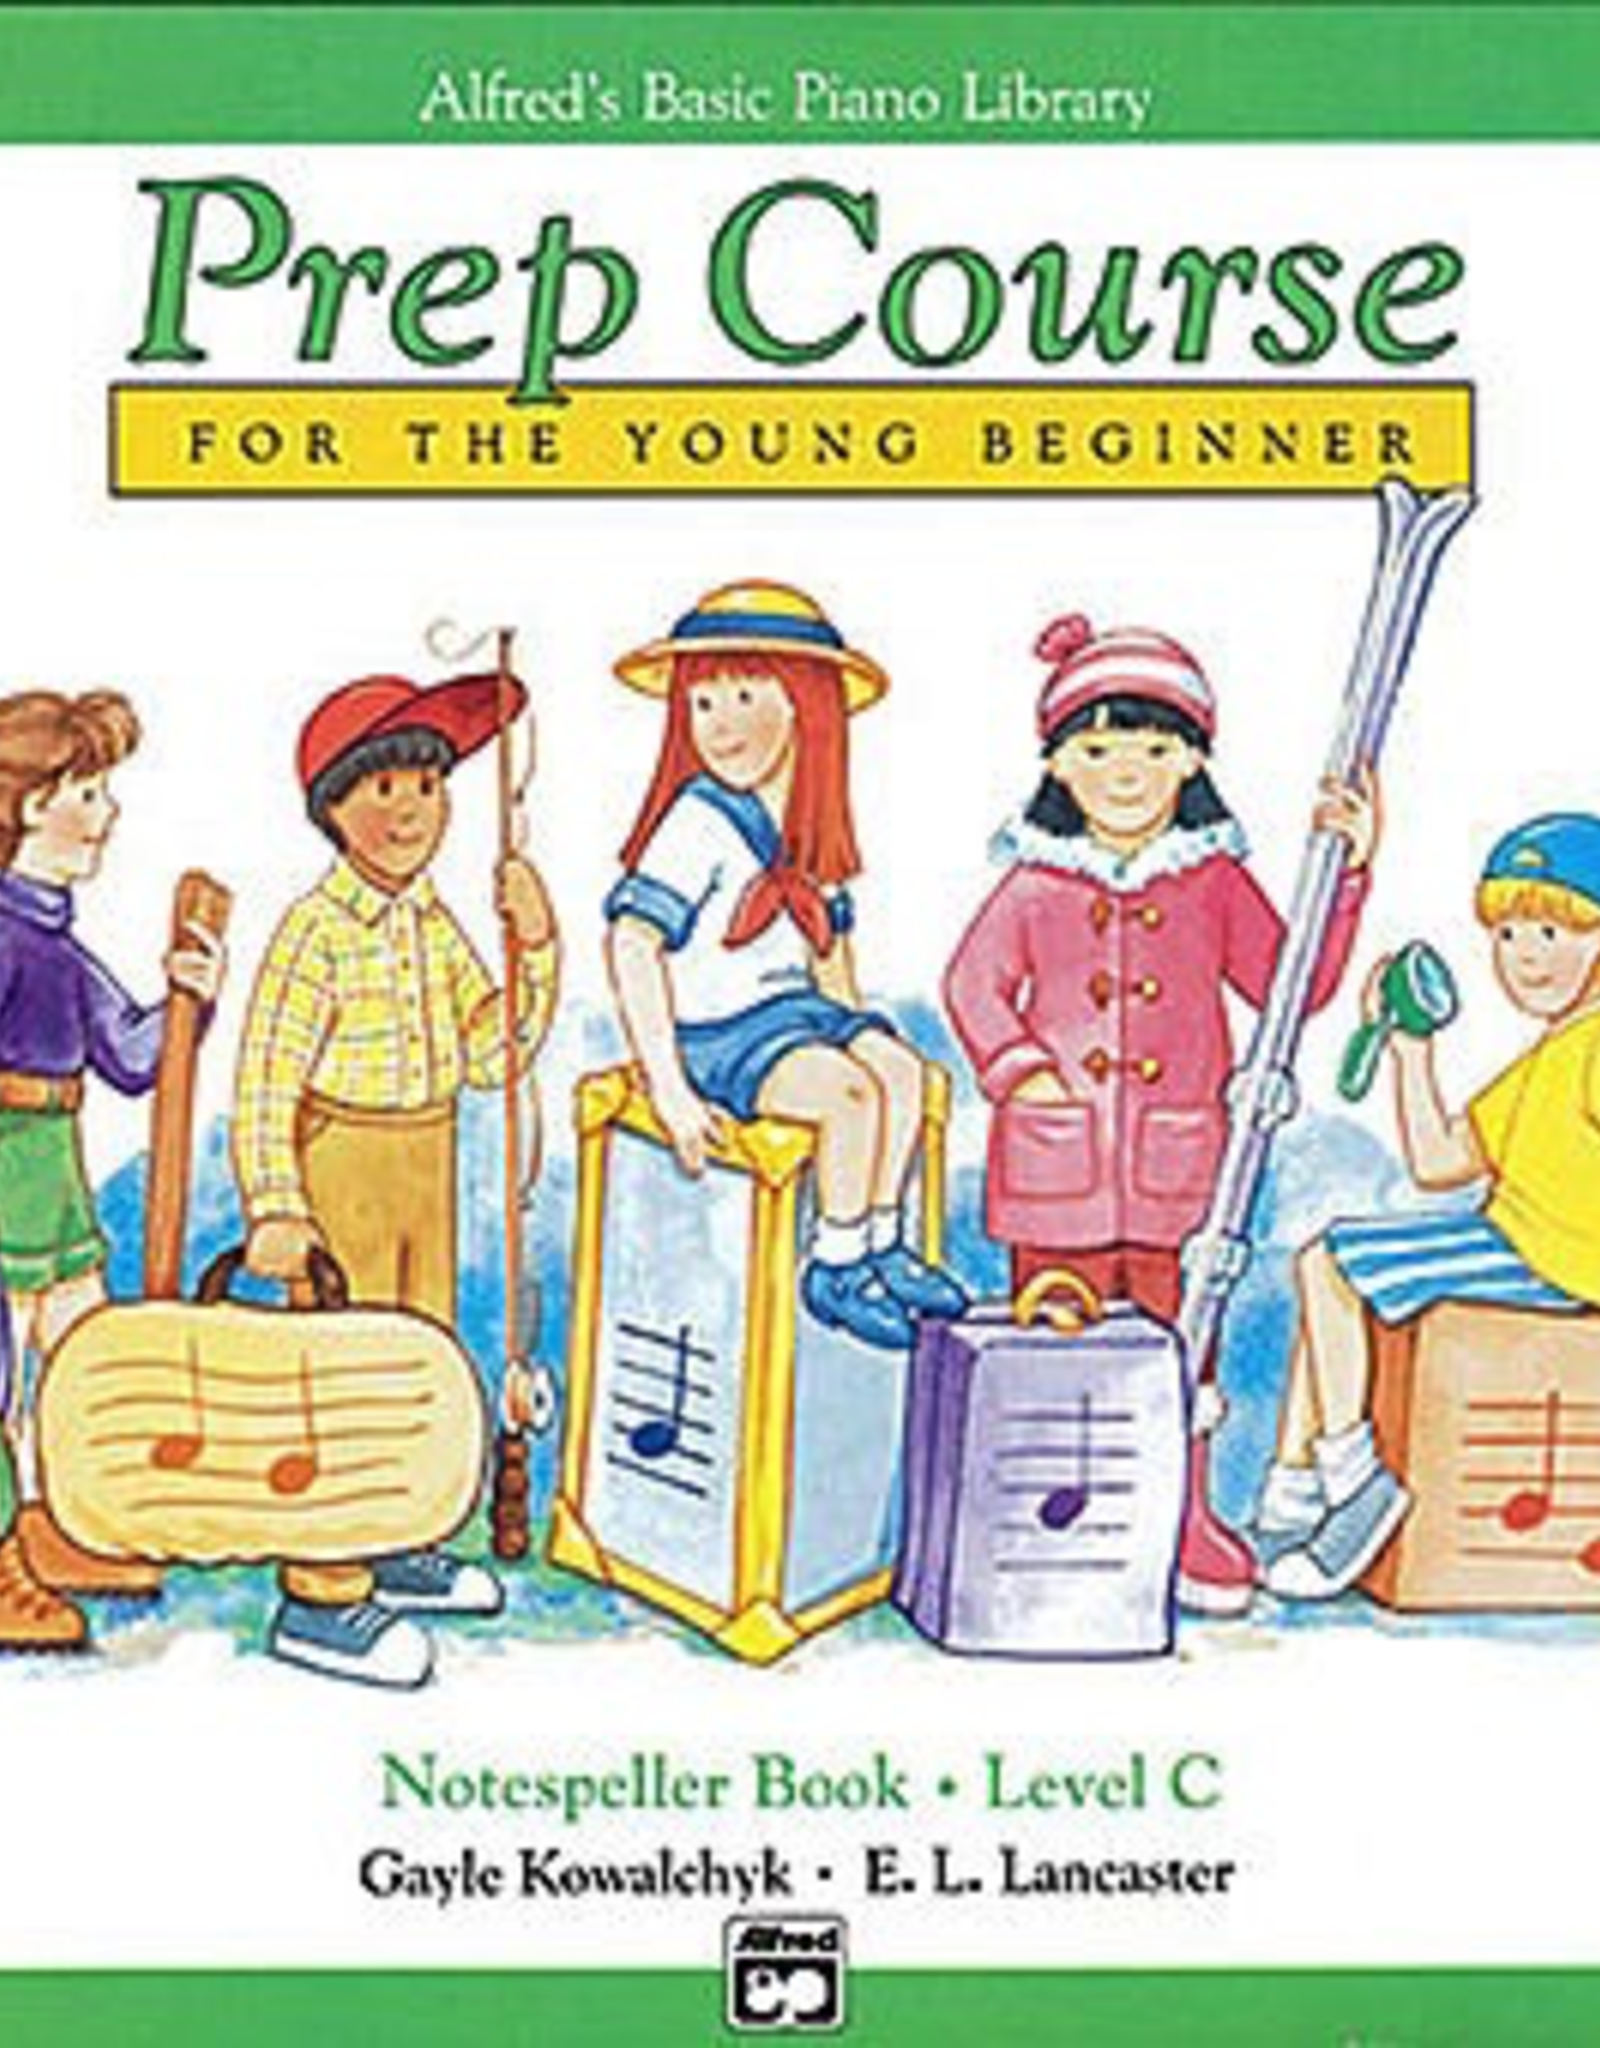 Alfred Music Alfred's Basic Piano Prep Course Notespeller -Book C